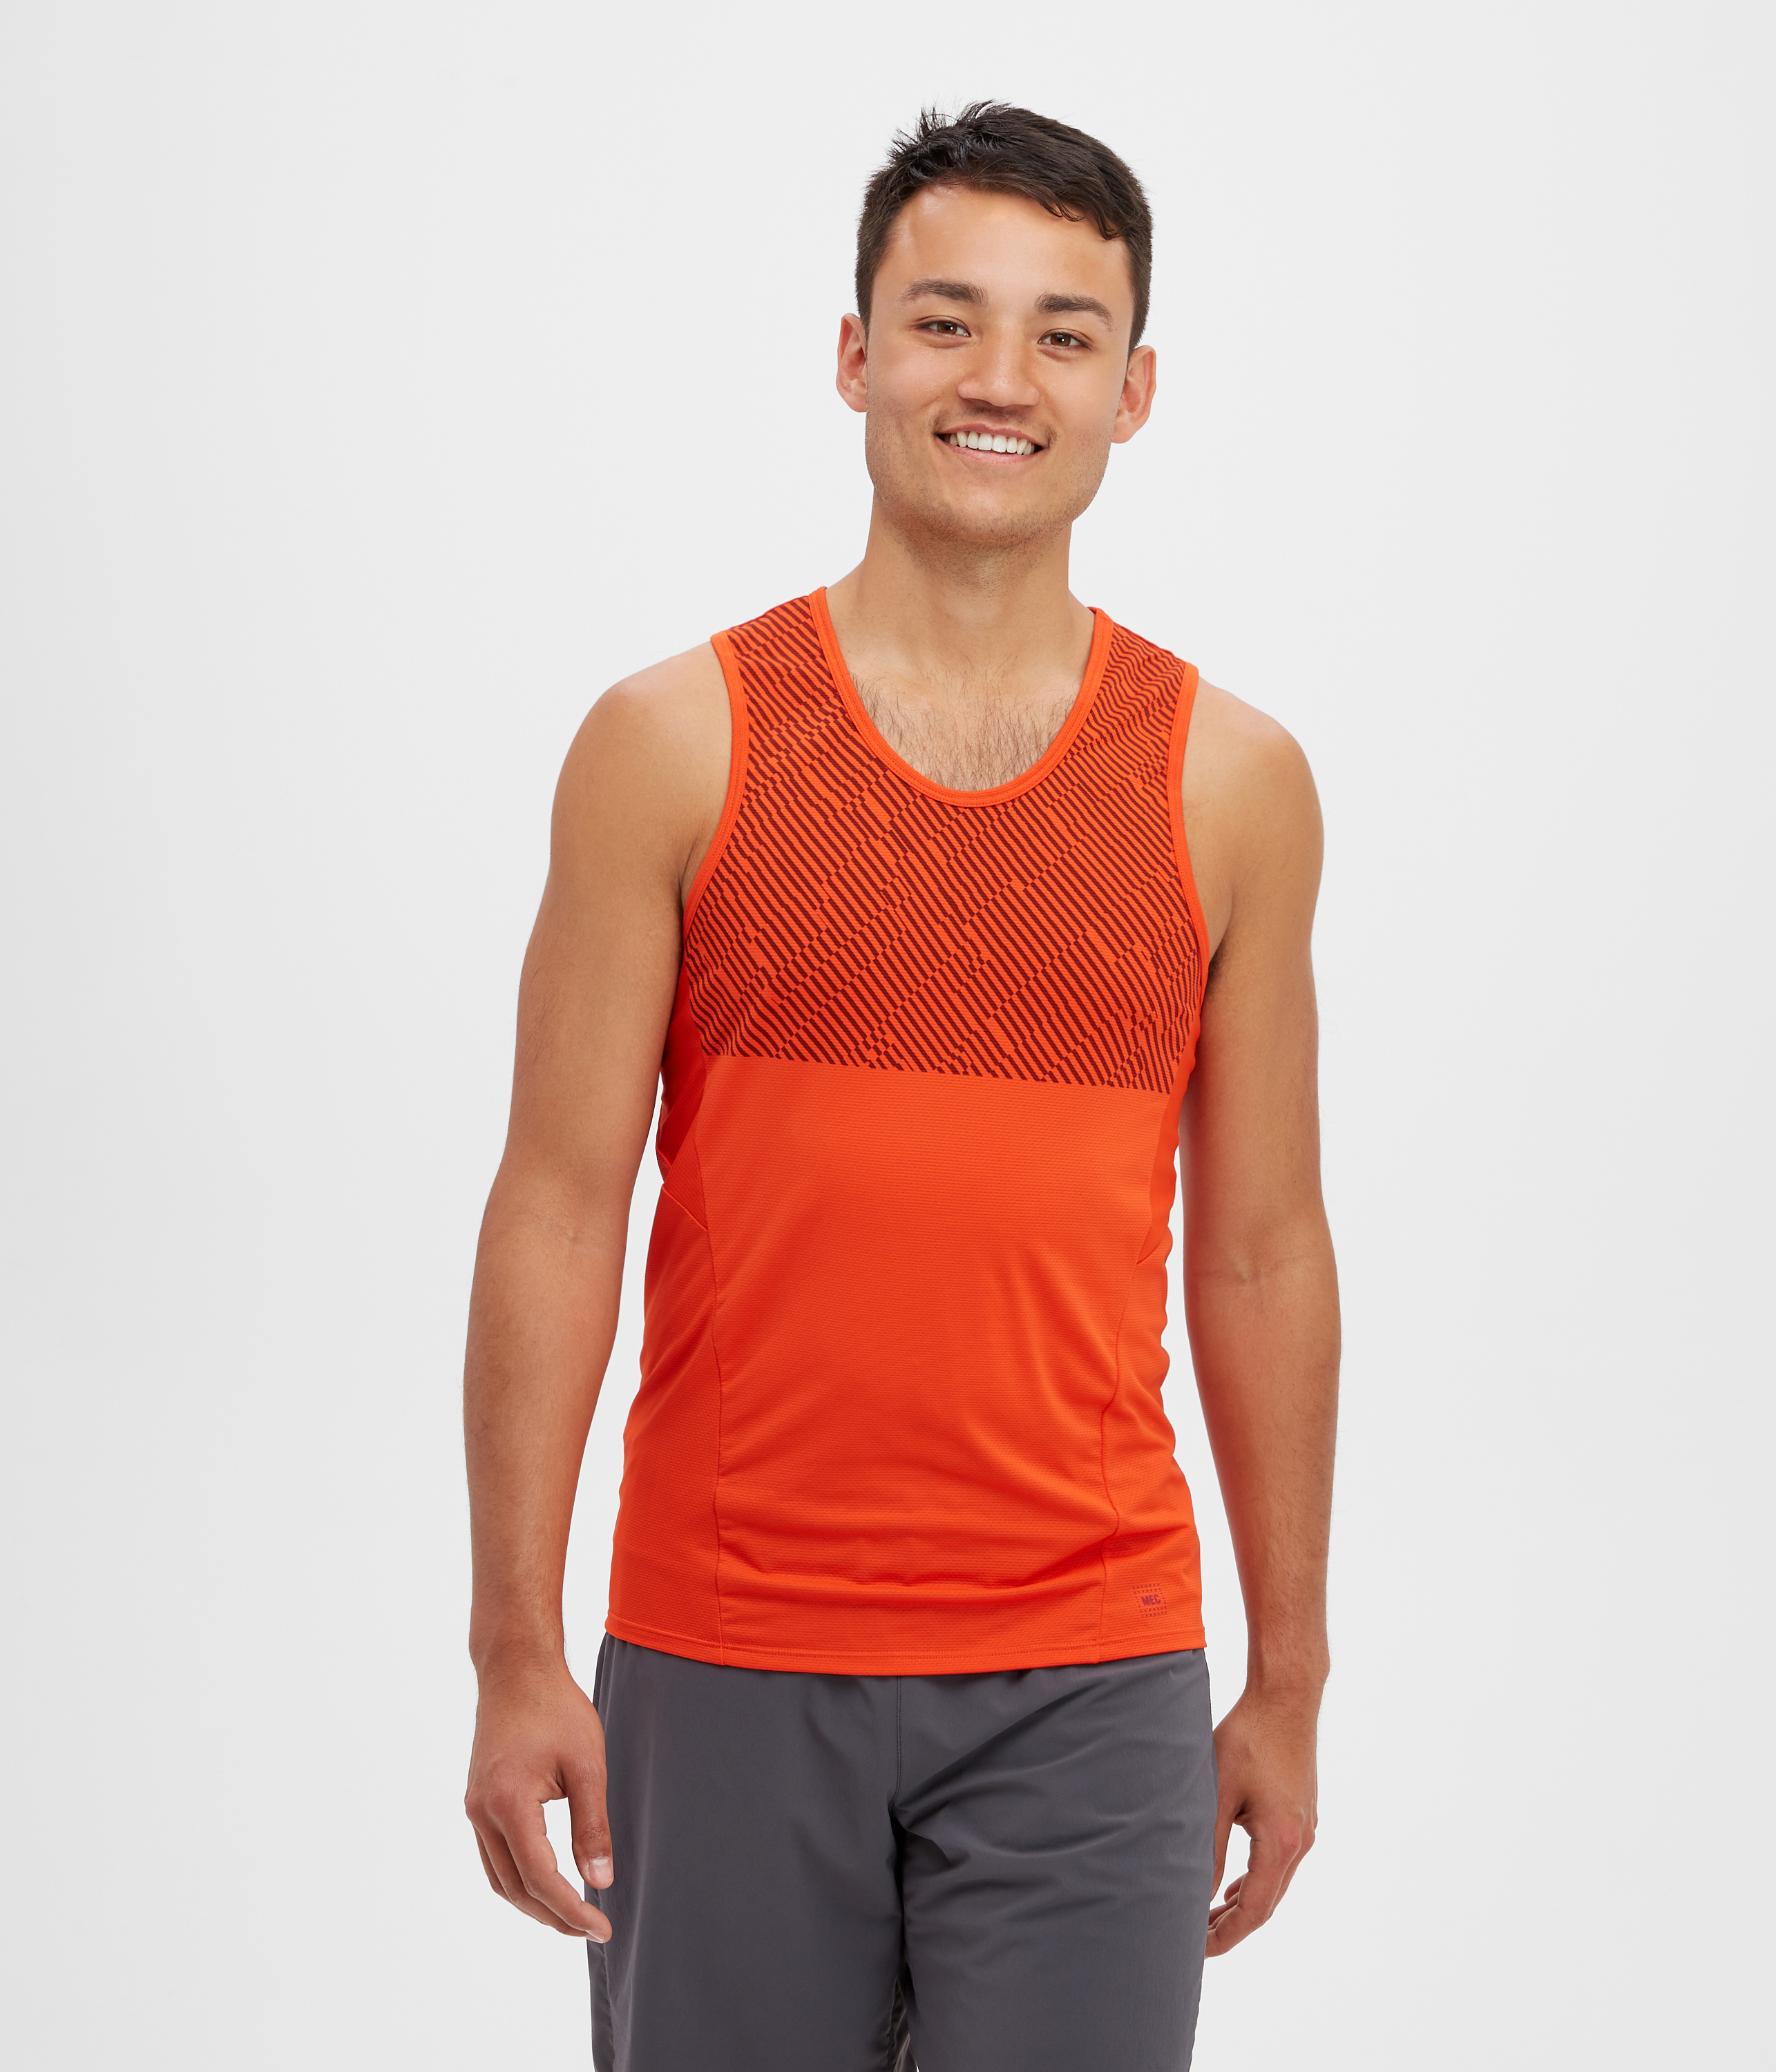 4f9cebe12f811 Men s Tanks and sleeveless shirts